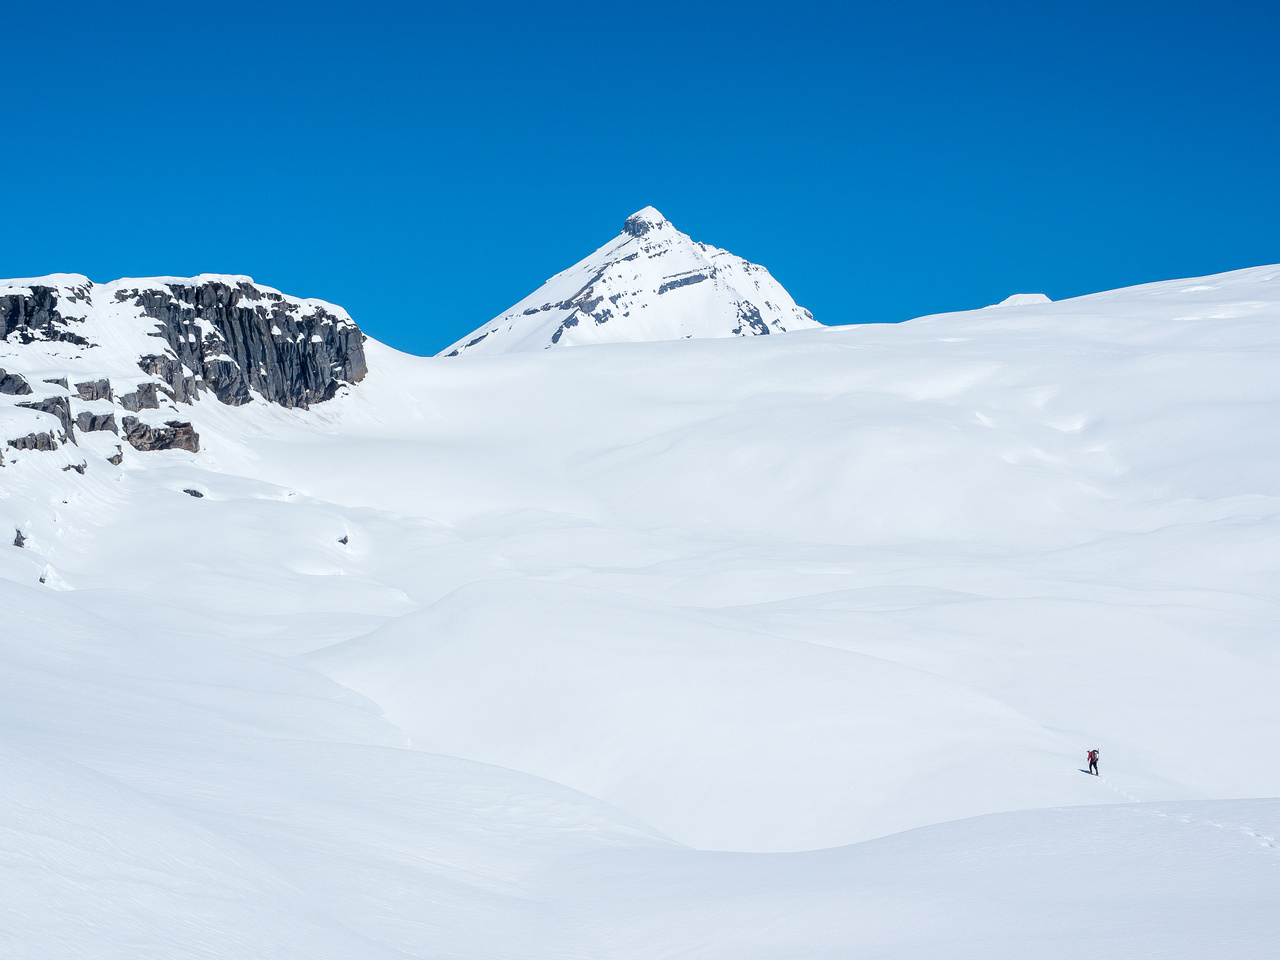 The handrail ridge at left with our ramp onto the glacier just ahead.